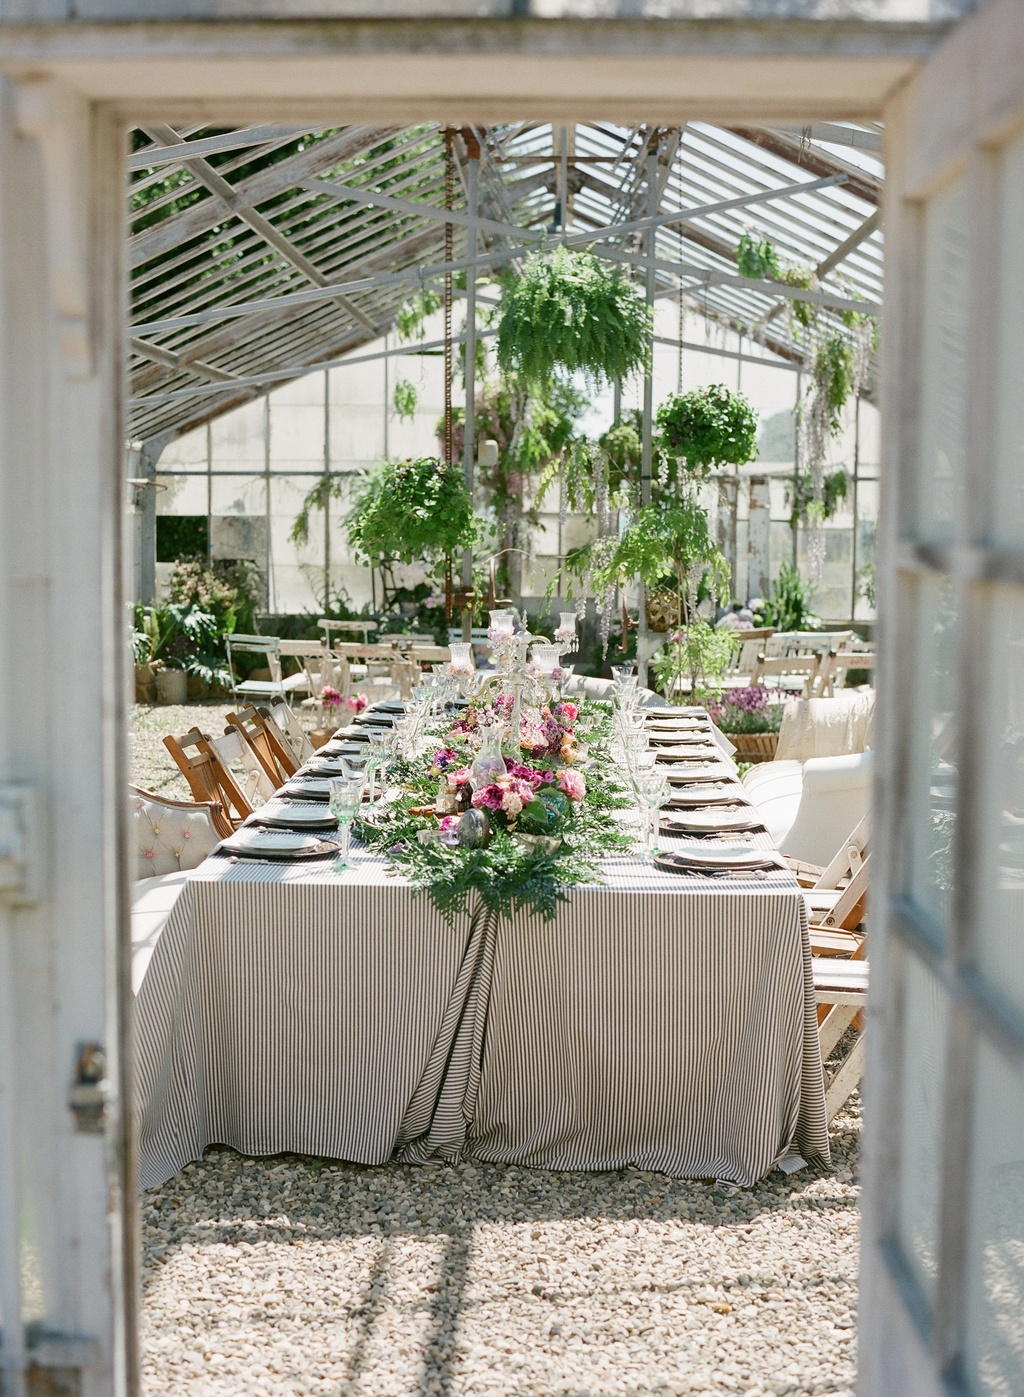 Styled-wedding-beaux-arts-tea-time-monique-lhuillier-santa-barbara-chic-table-flowers-table-setting-venue-23.full